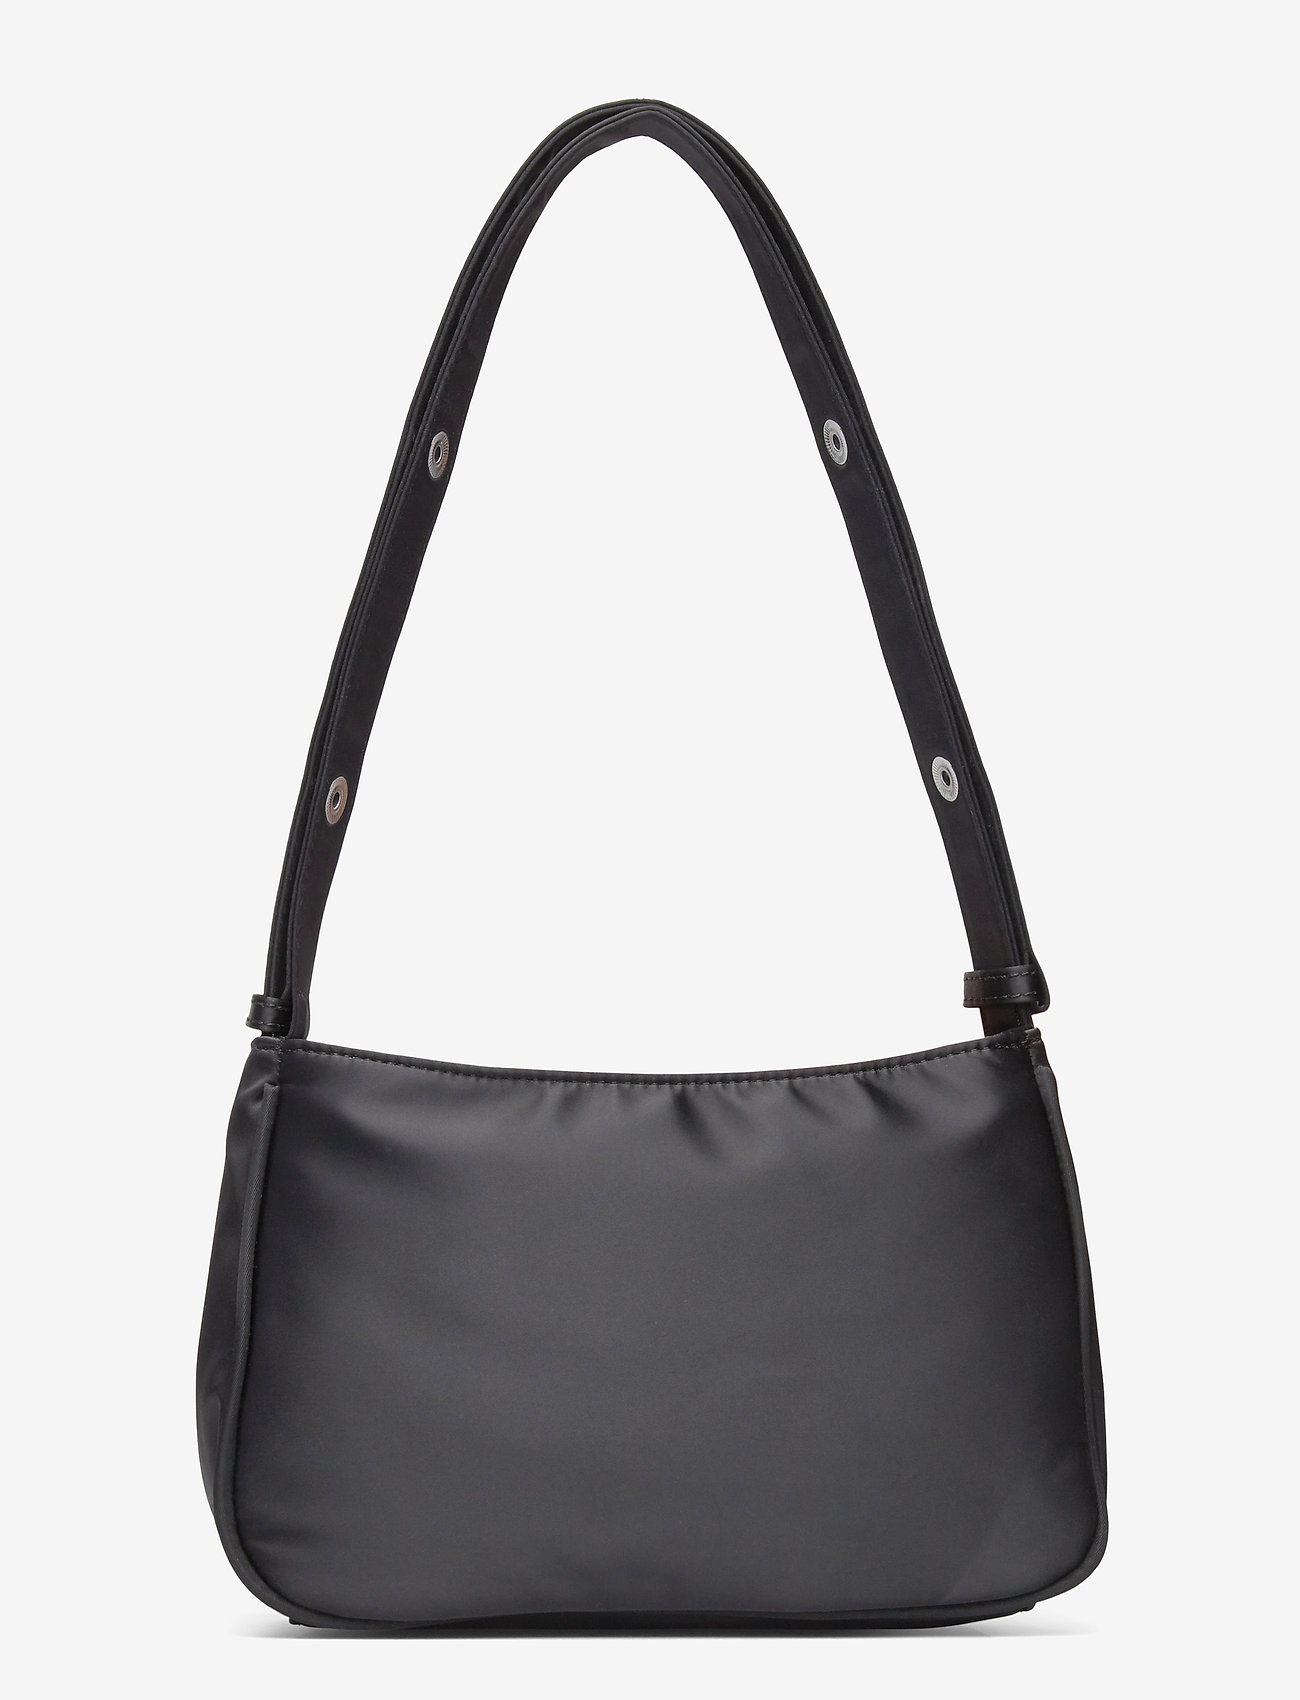 Unlimit Shoulder Bag Kerry (Black) - Unlimit ksDLBV